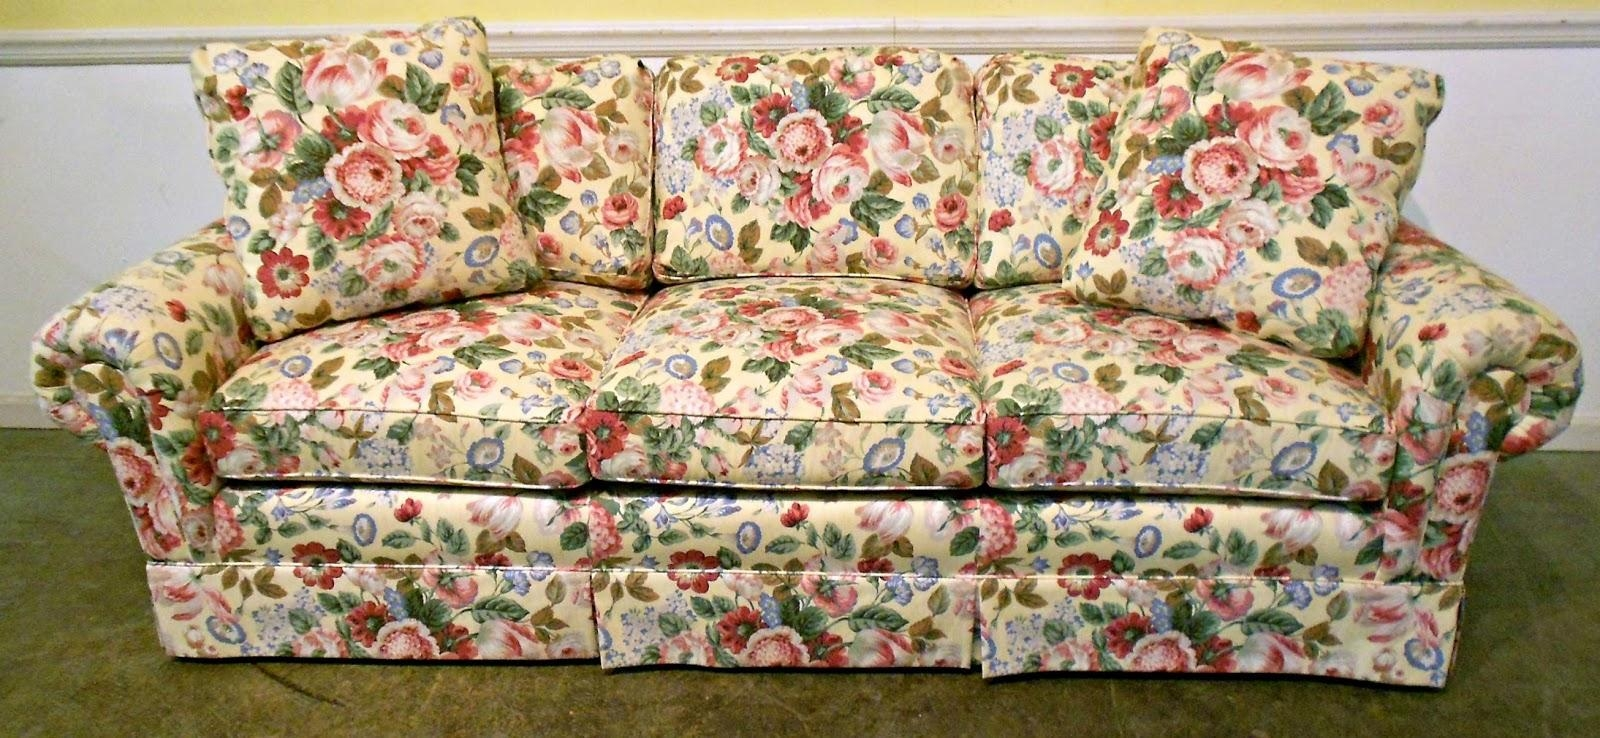 Favorite Floral Fabric Round Up | Restyle It Wright Within Floral Sofas (View 11 of 20)